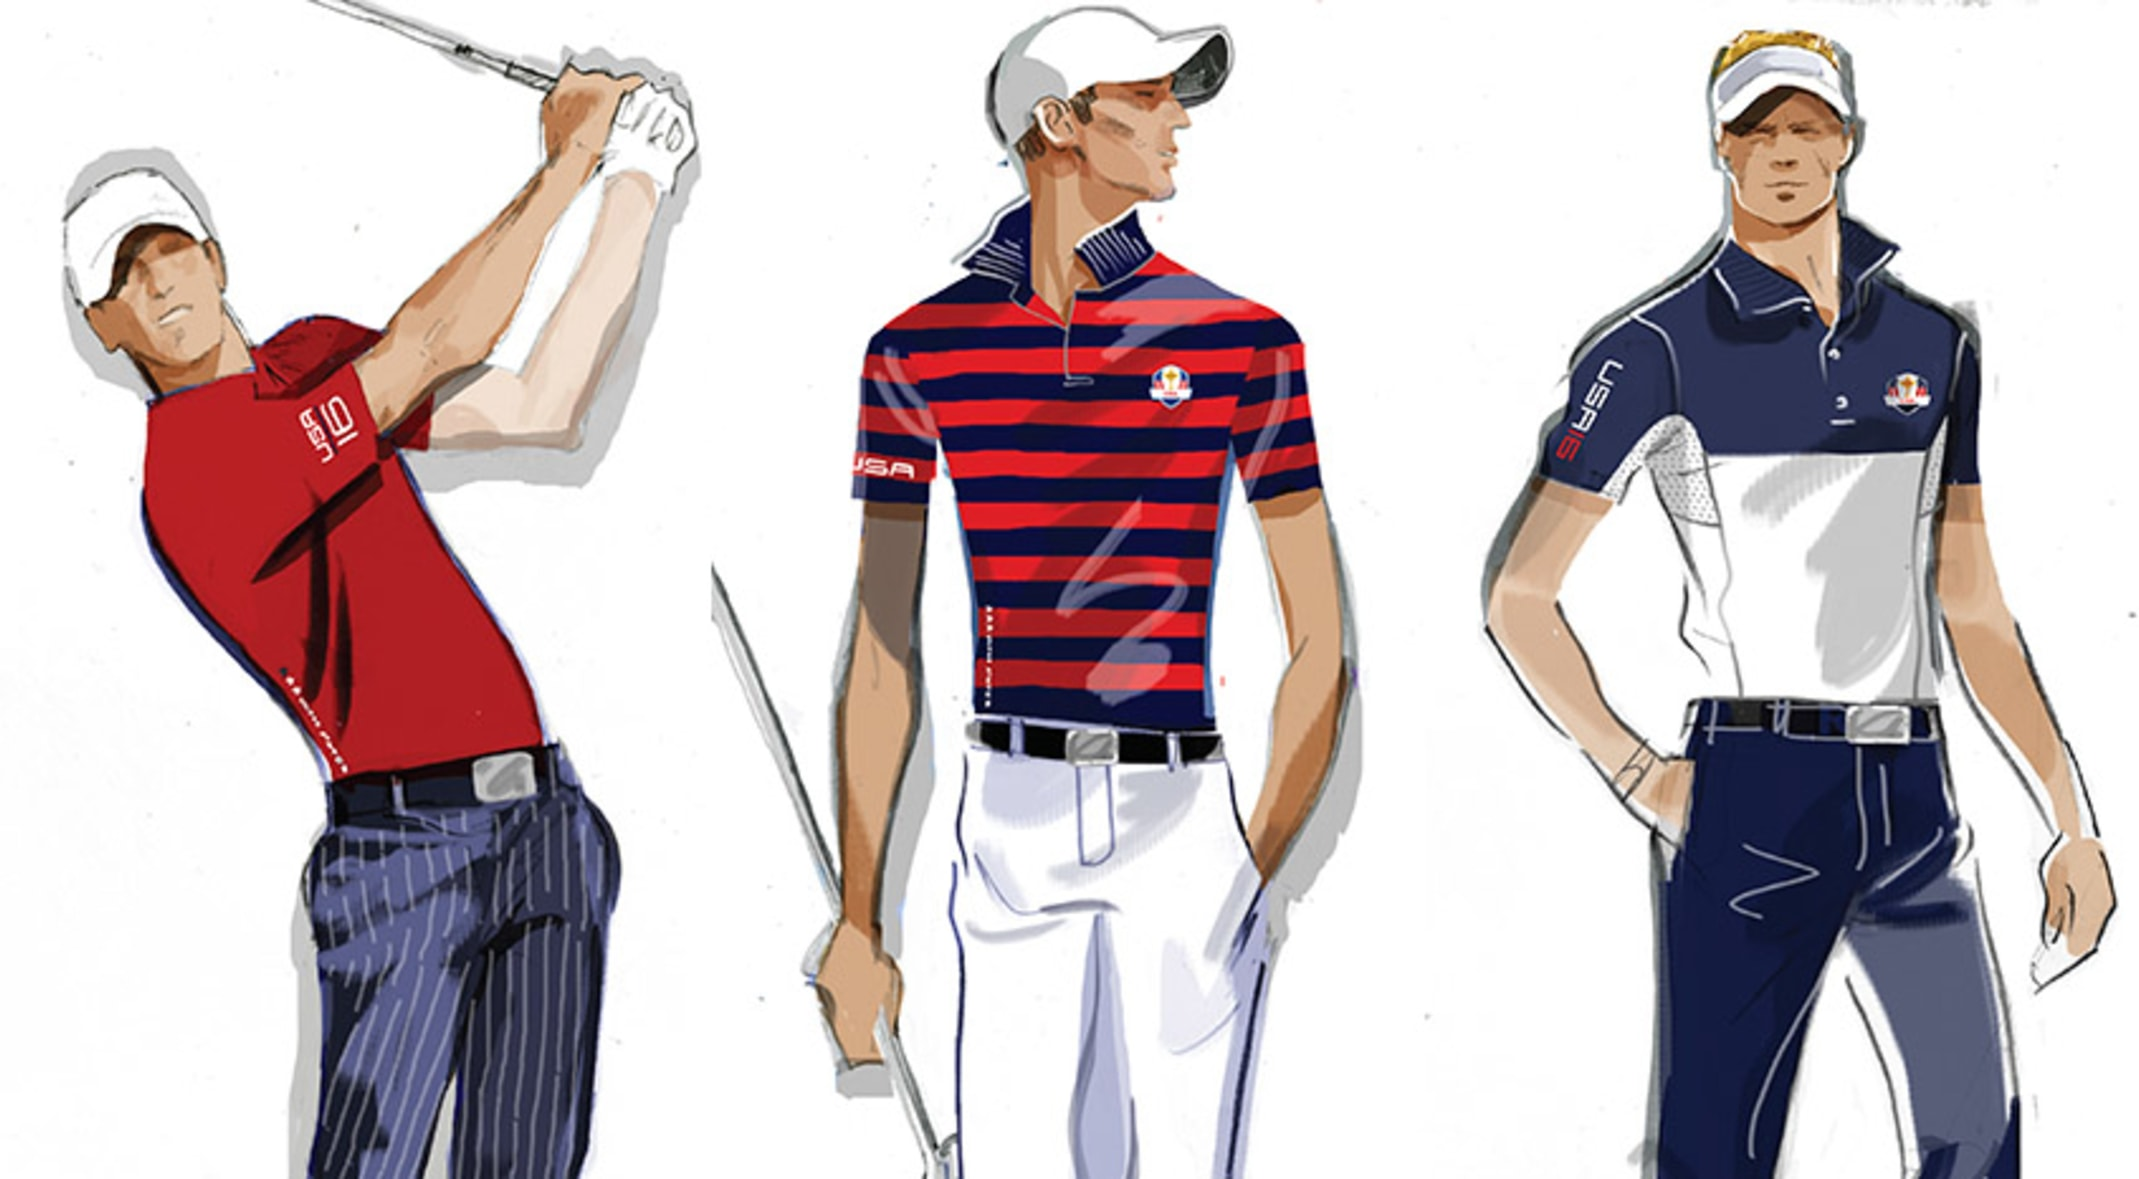 b10d2f2bed9a8 The members of Team USA will be looking sharp in kits from Ralph Lauren at  Hazeltine